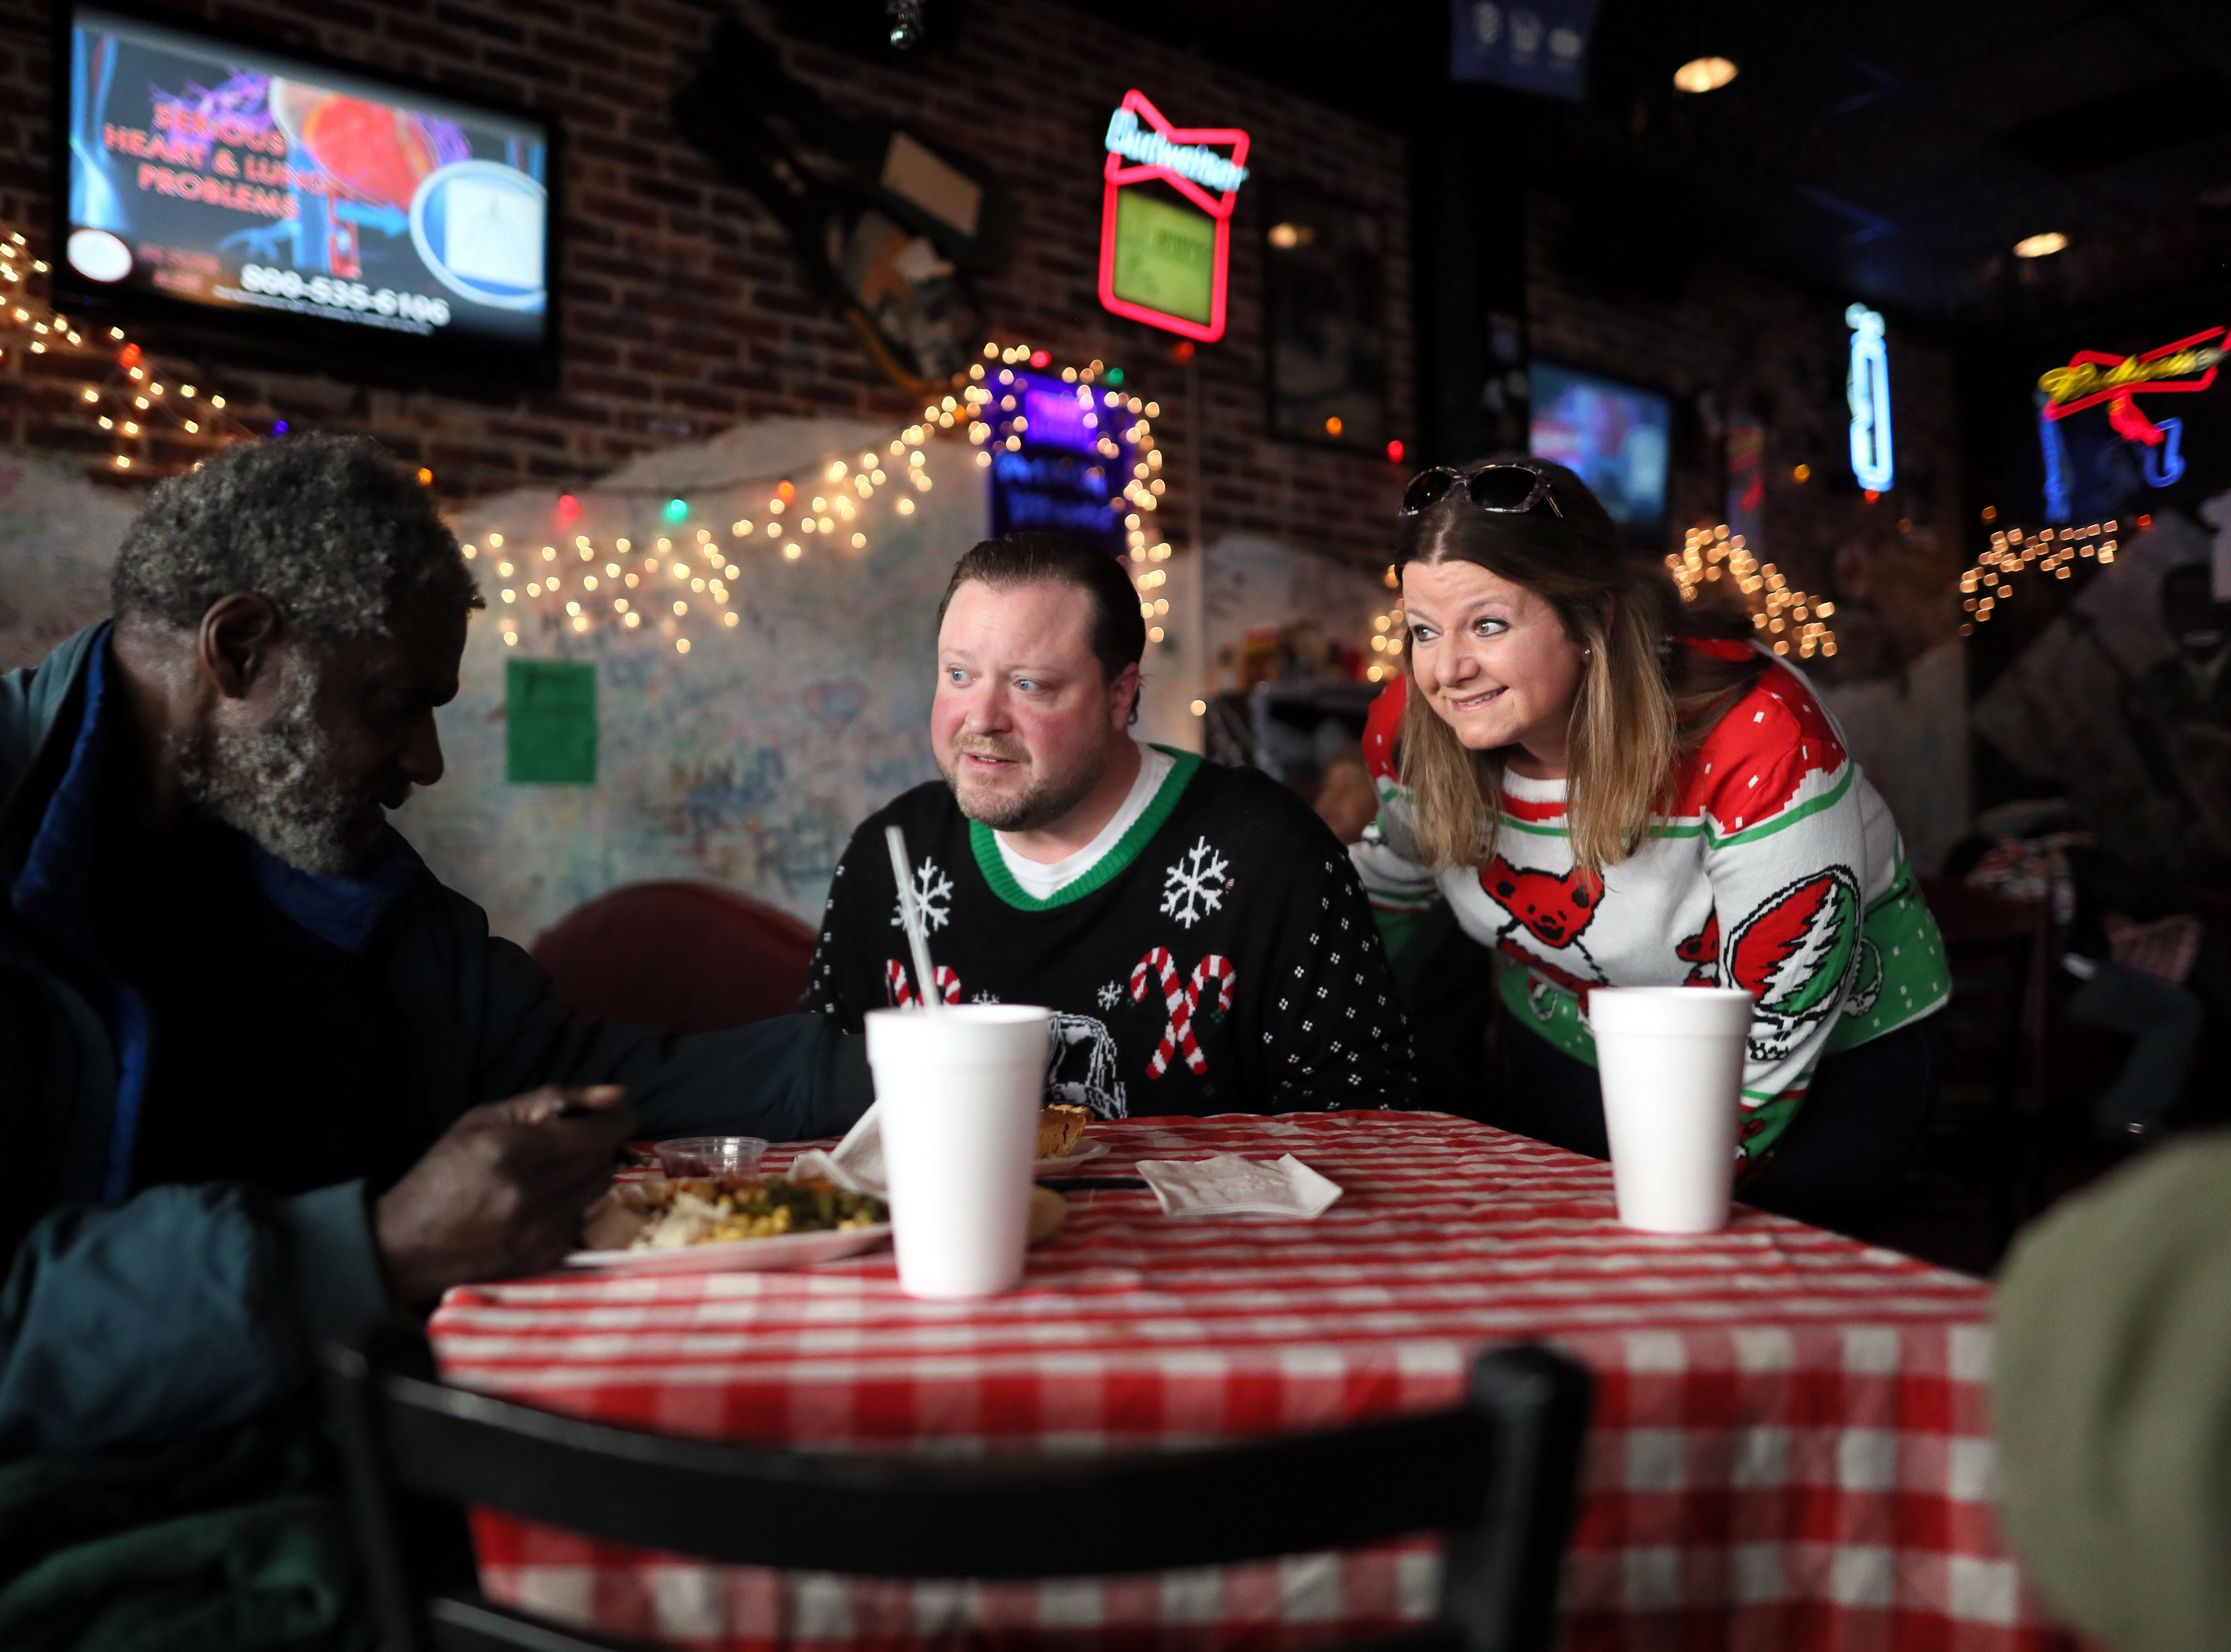 Michelle Hurt and her husband Will chat with guests as they serve free meals and hand out warm clothing at the Huey's downtown restaurant on Christmas Day Tuesday, Dec. 25, 2018.